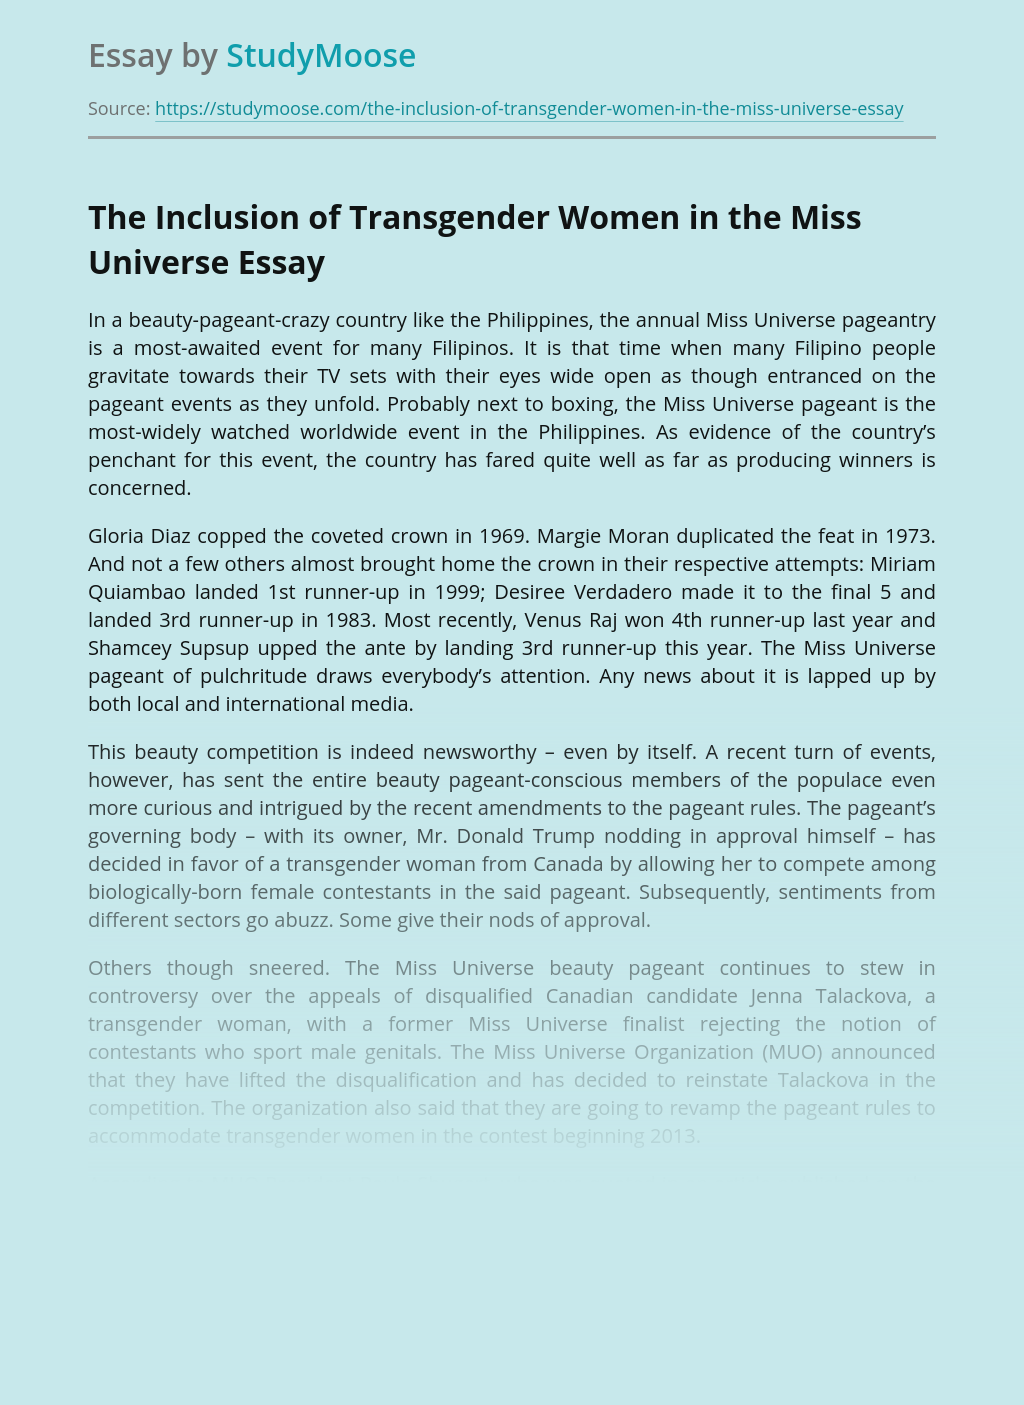 The Inclusion of Transgender Women in the Miss Universe